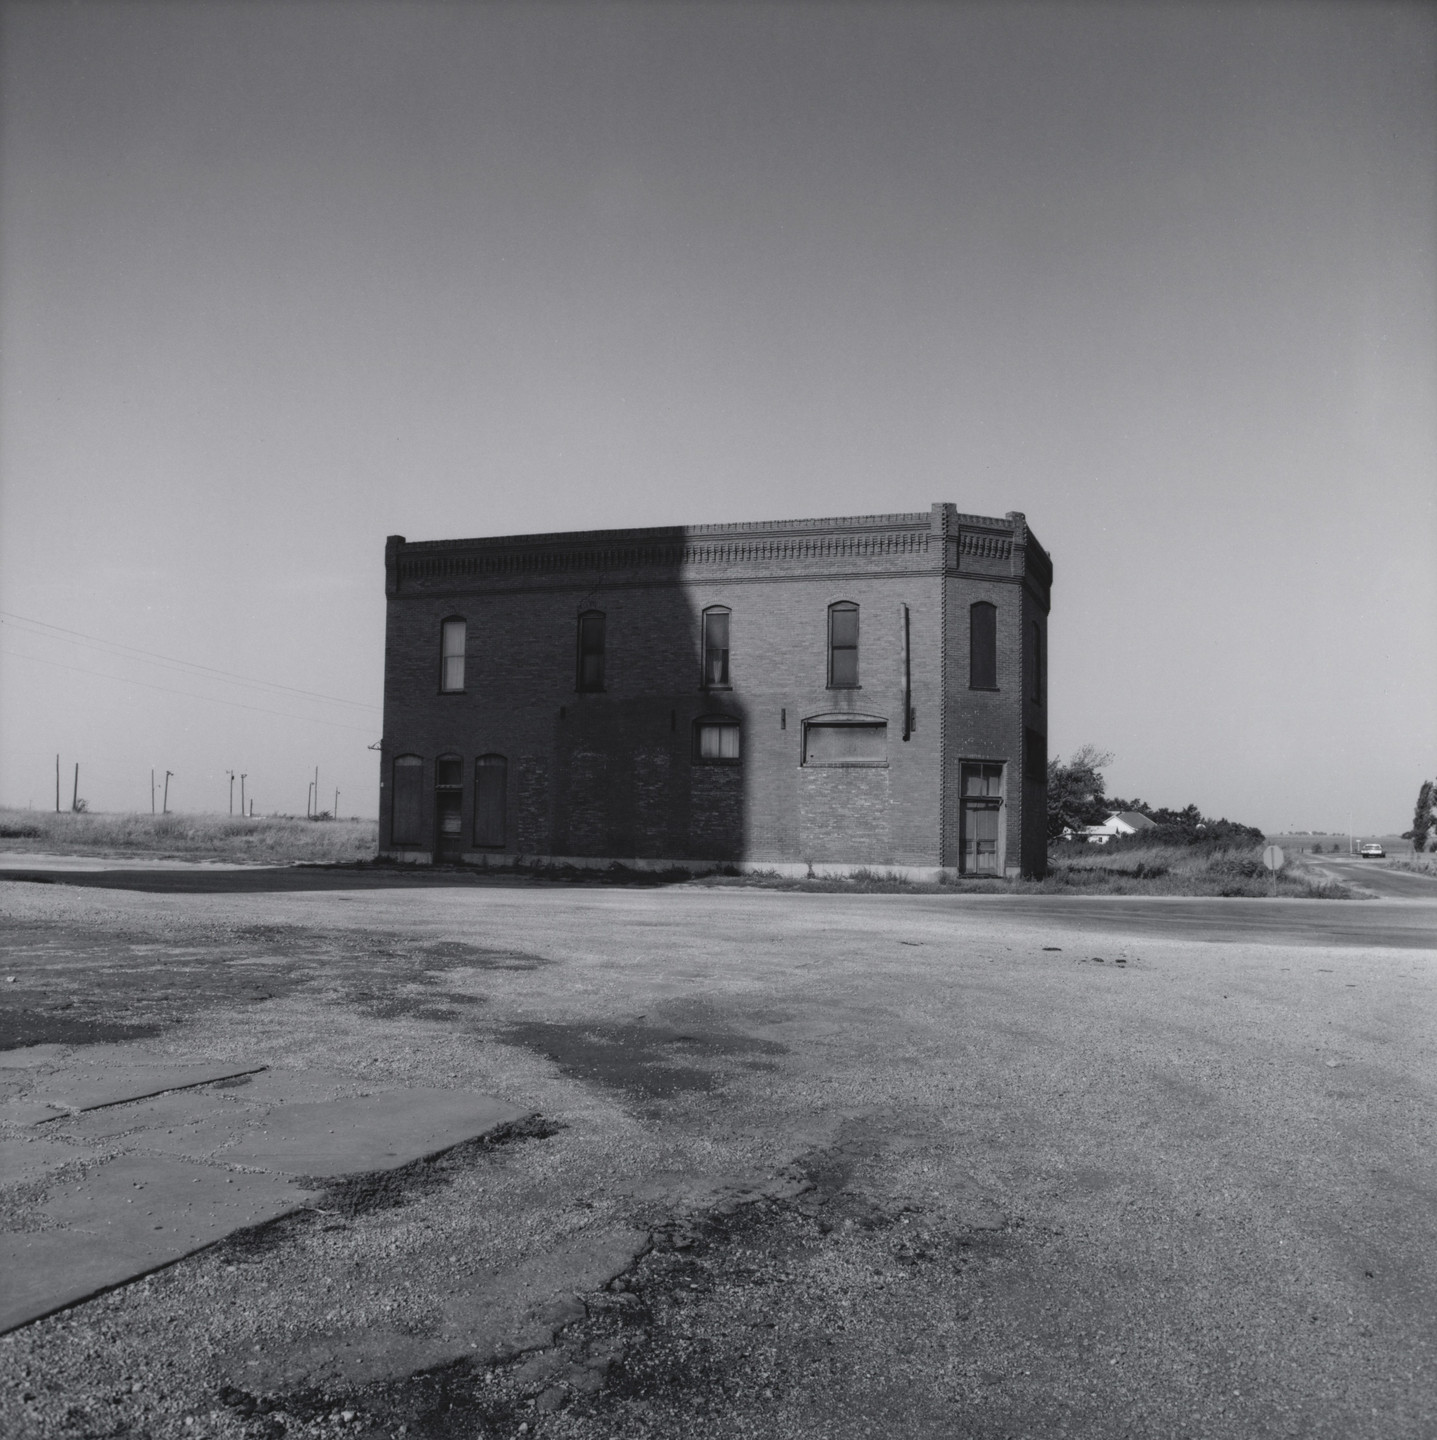 Frank Gohlke. Brick Building in the Shadow of a Grain Elevator - Cashion, Oklahoma. 1973-74